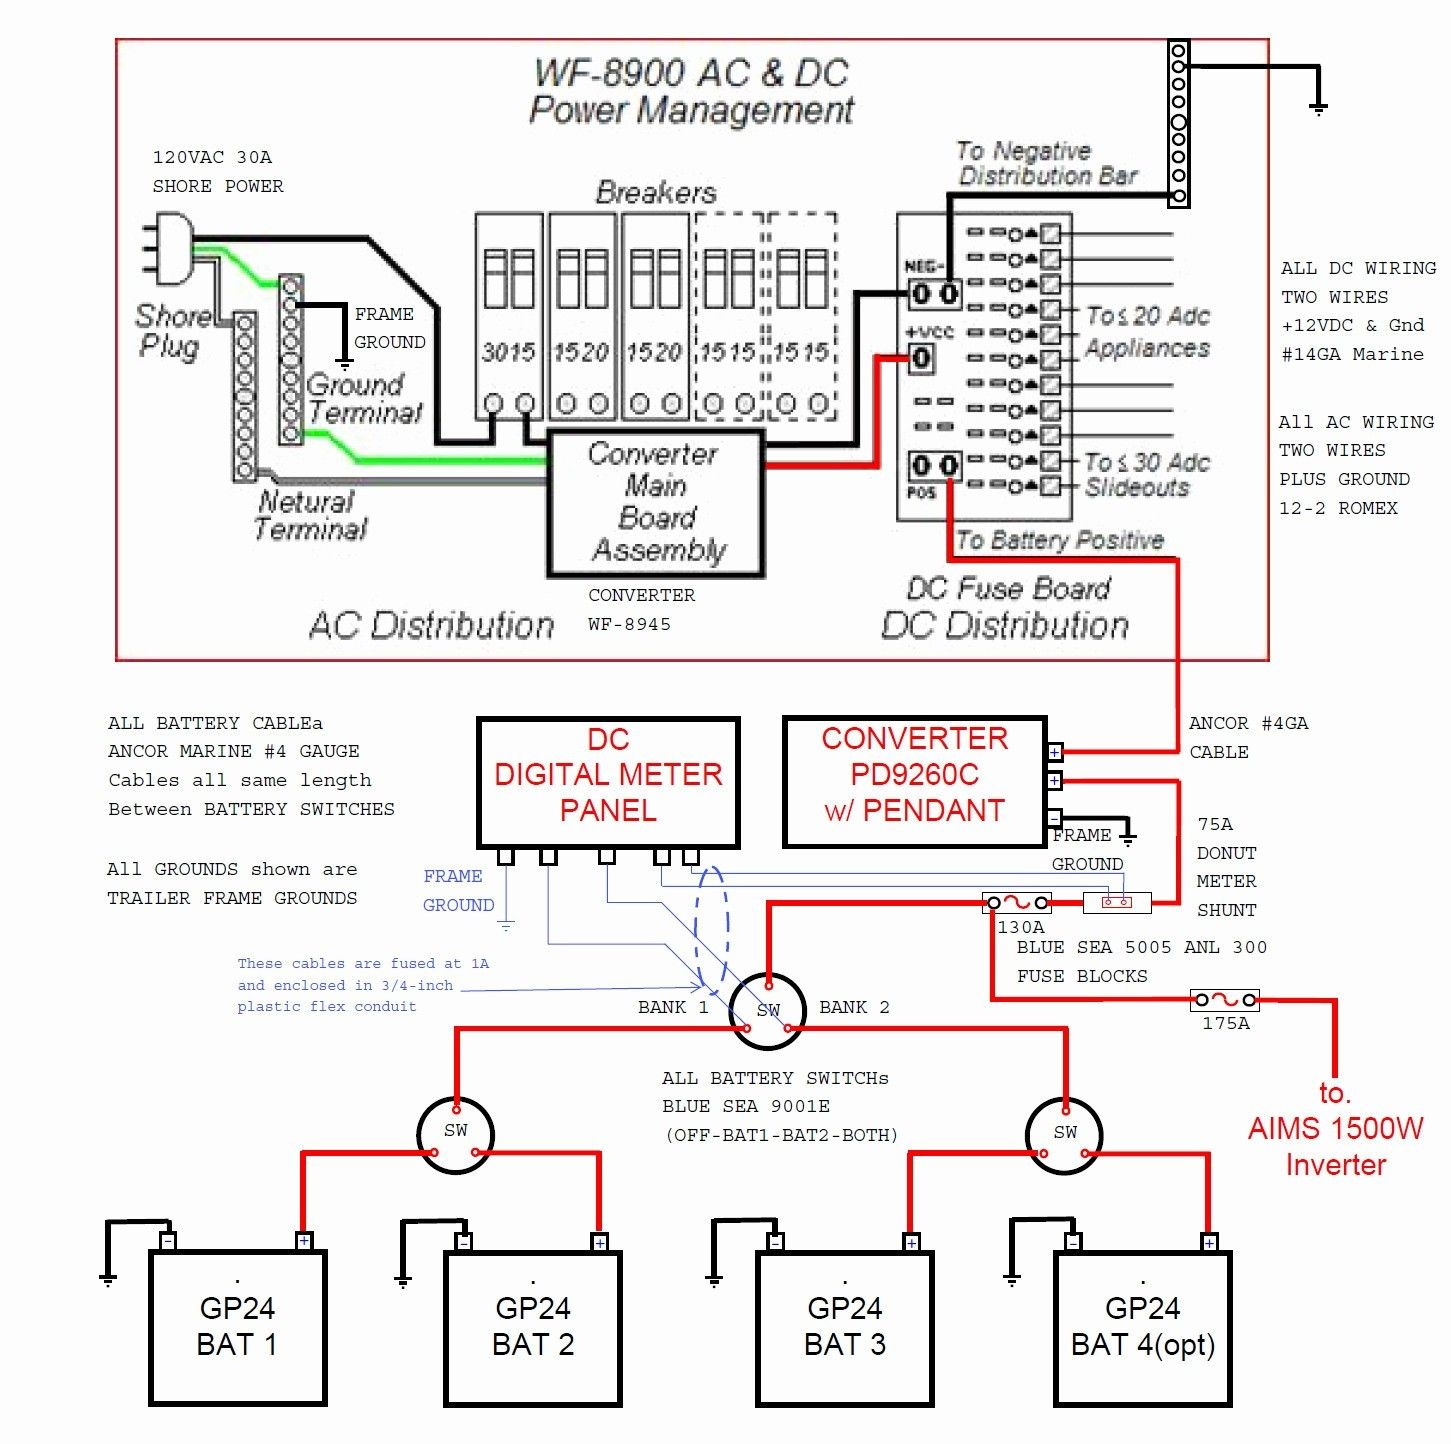 hight resolution of 50a wiring diagram wiring diagram data val 250v schematic wiring